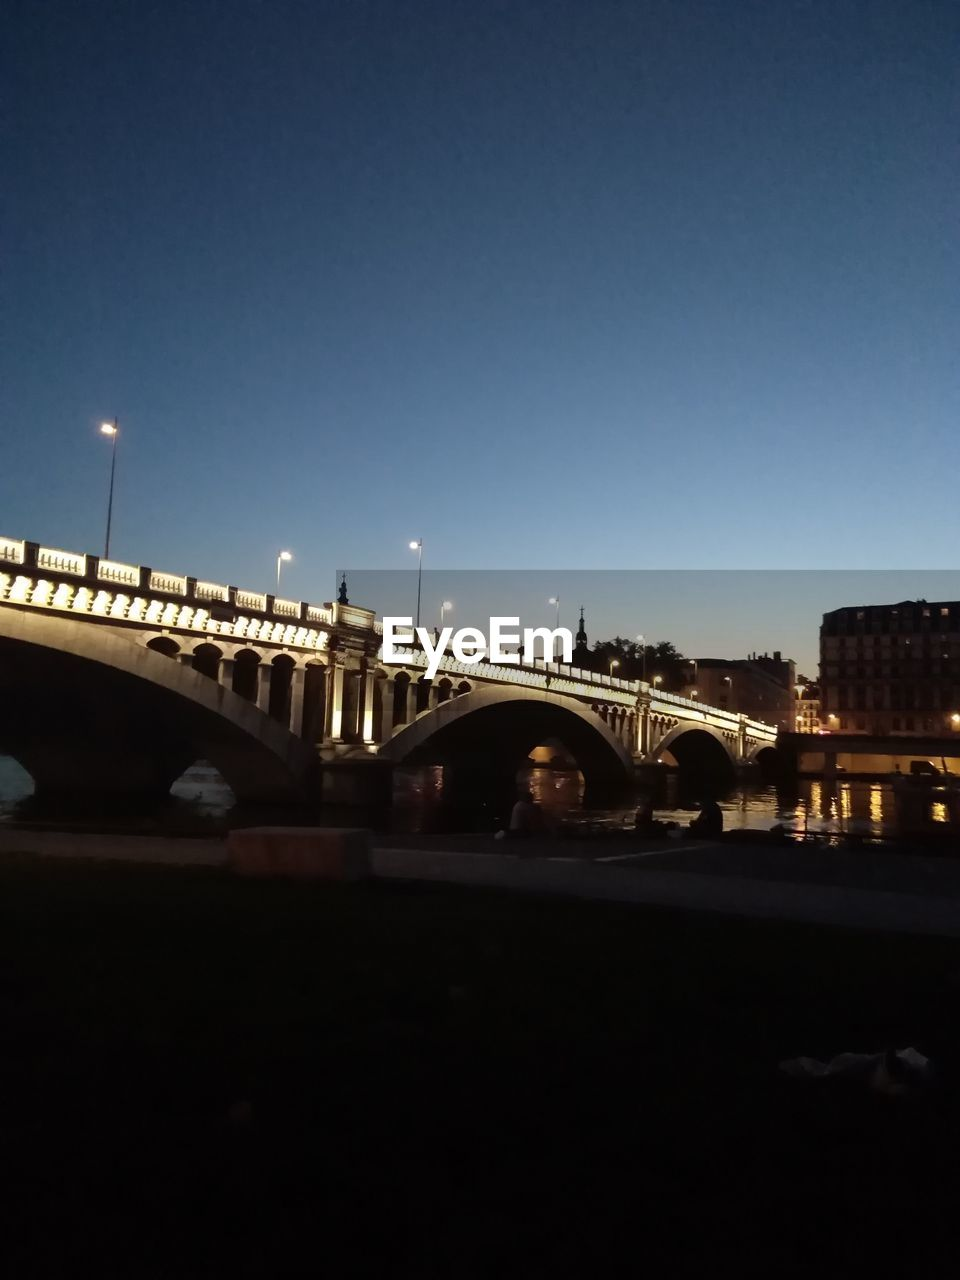 sky, architecture, built structure, bridge, connection, transportation, bridge - man made structure, building exterior, copy space, city, nature, illuminated, clear sky, night, street, outdoors, mode of transportation, water, street light, river